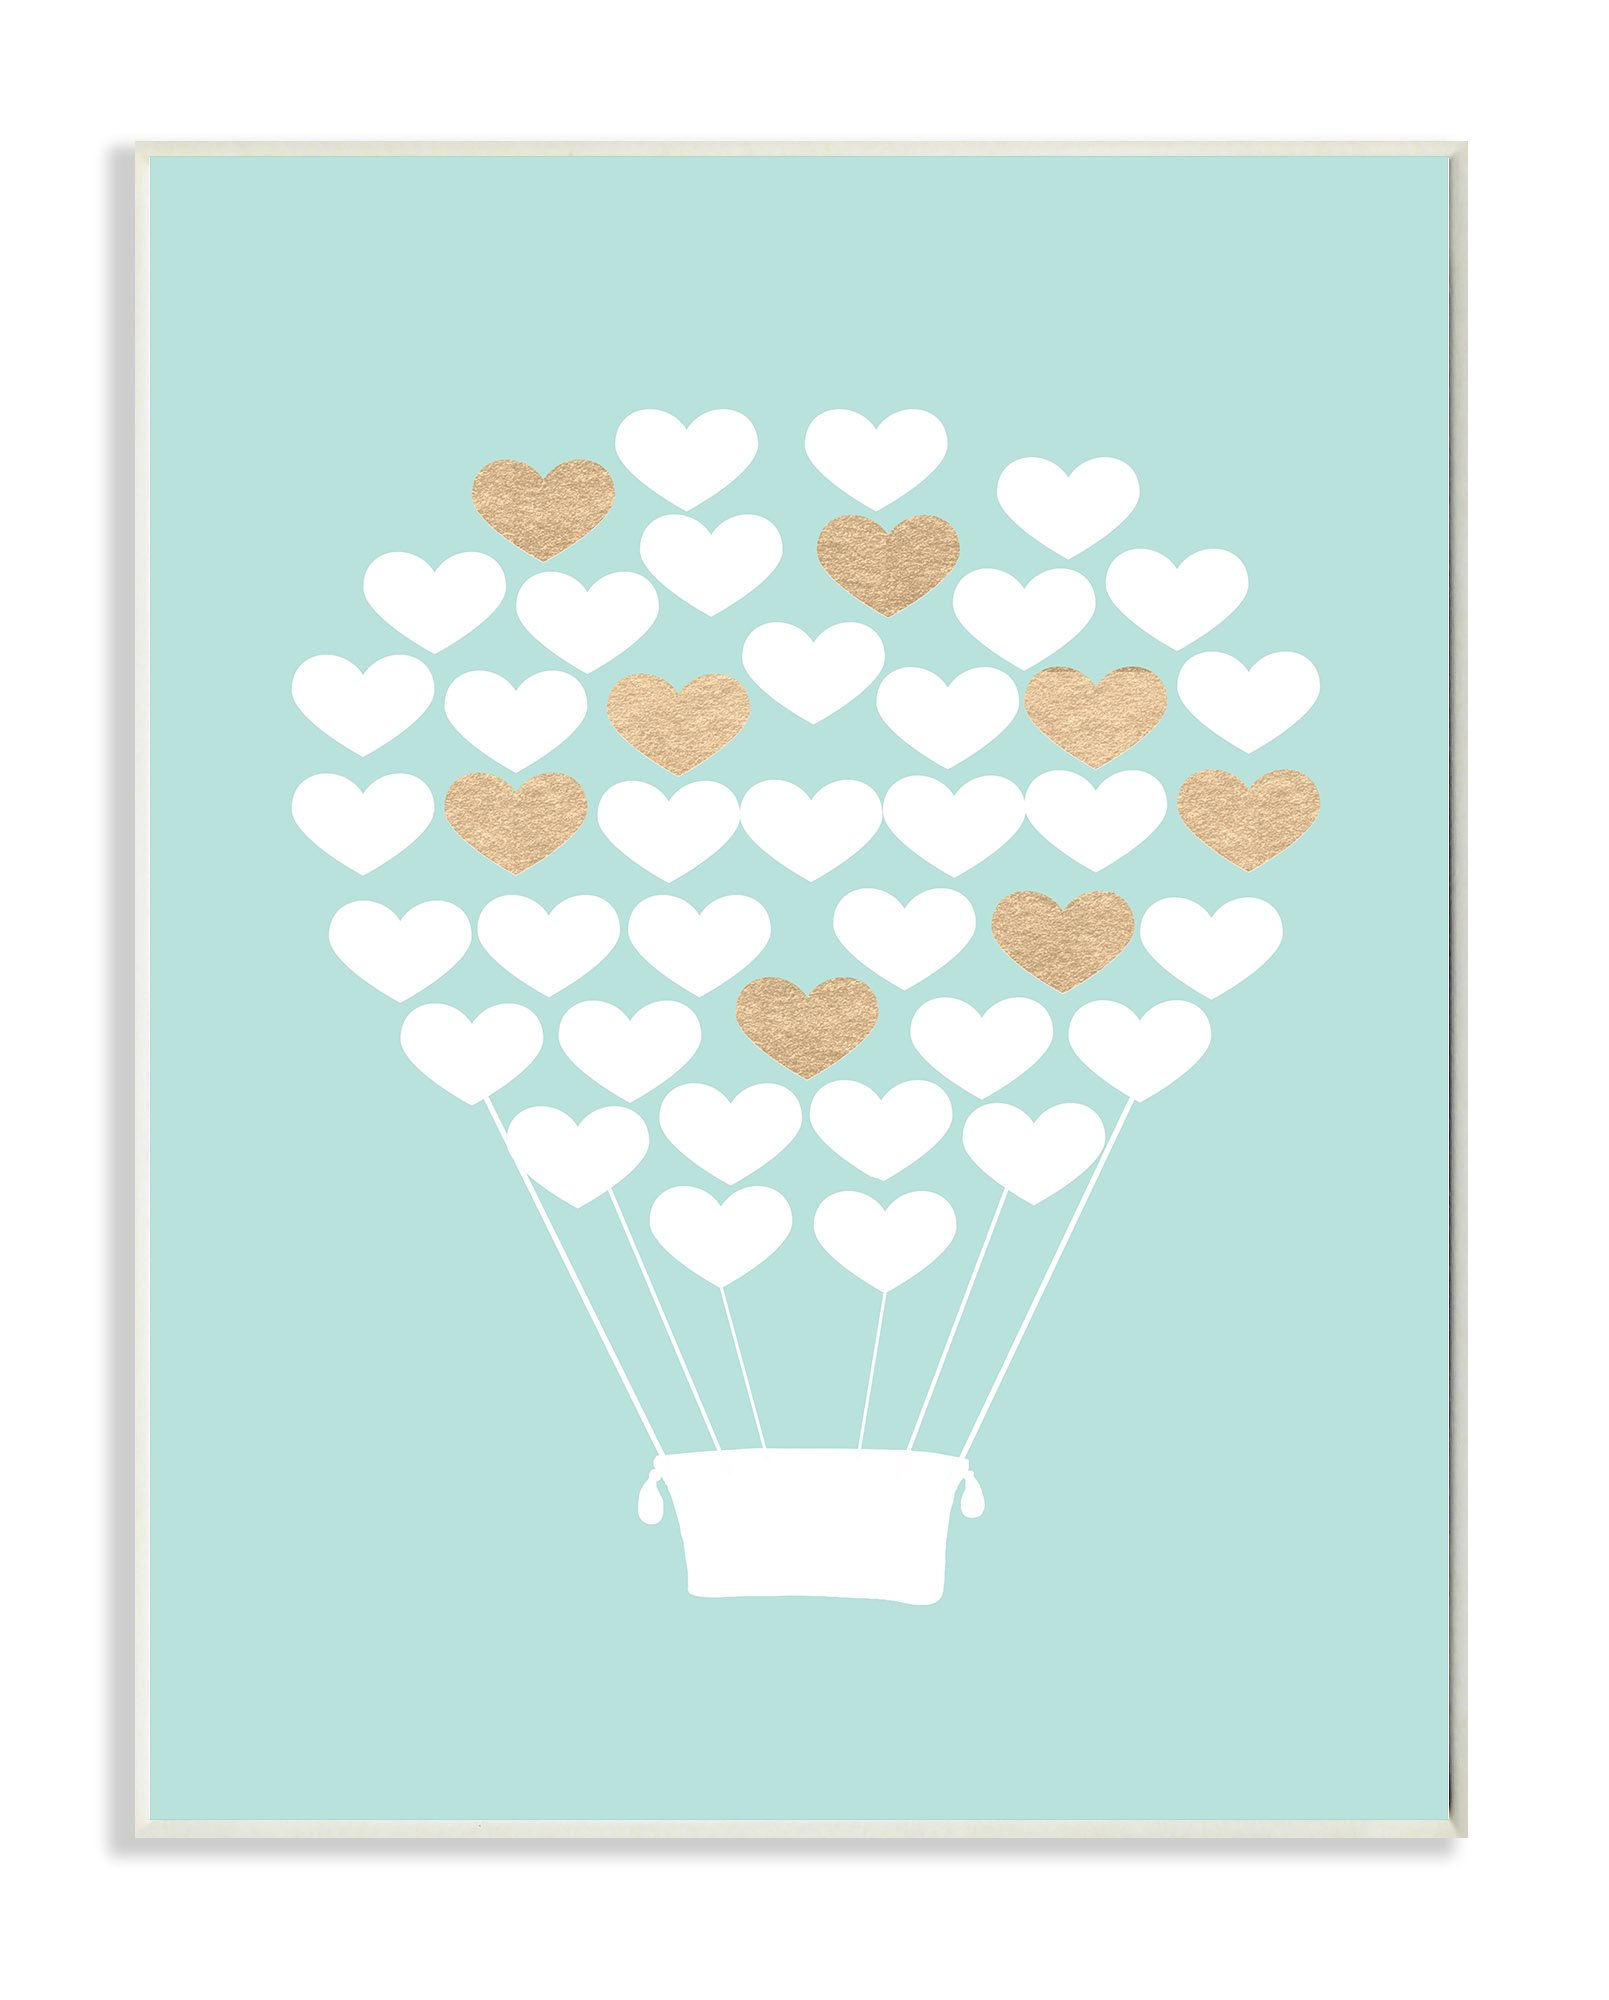 Stupell Home Décor White Gold Teal Heart Hot Air Balloon Wall Plaque Art, 10 x 0.5 x 15, Proudly Made in USA by The Kids Room by Stupell